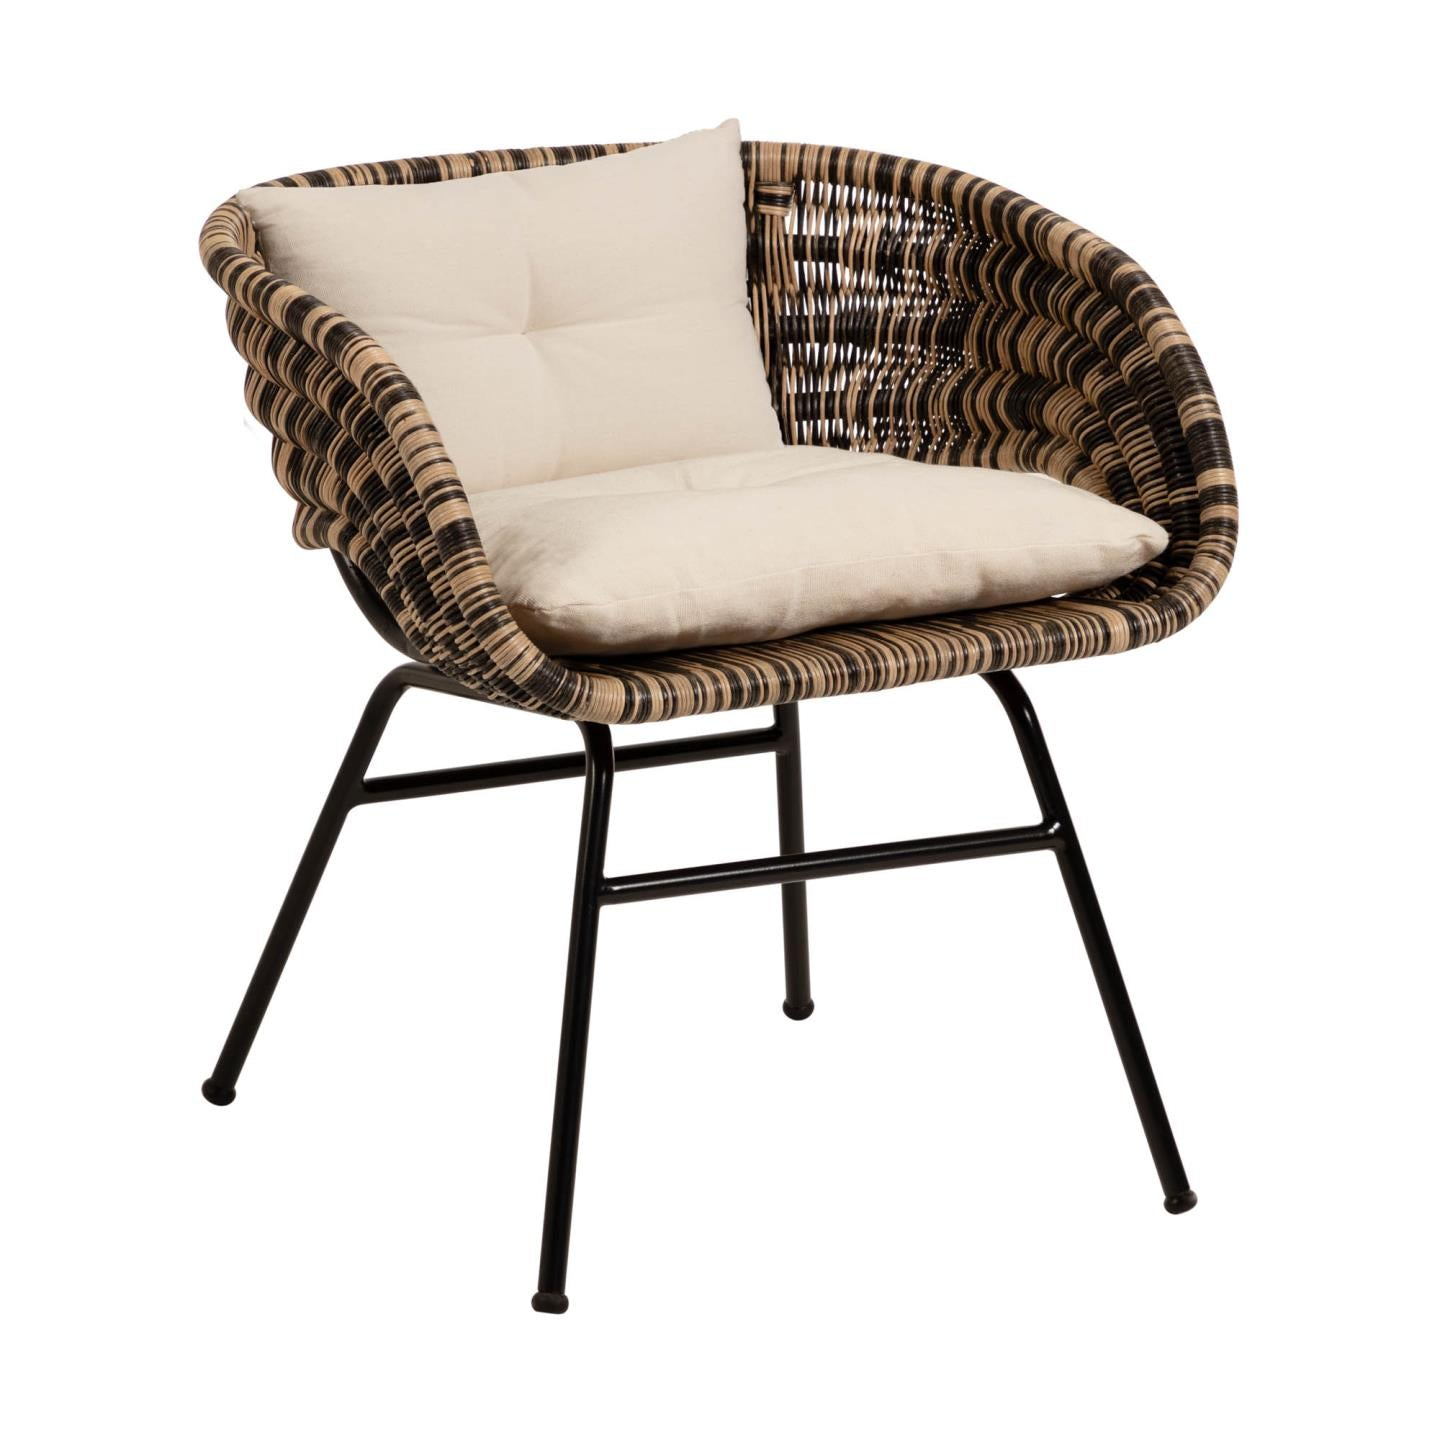 Lissa Rattan Dining Chair